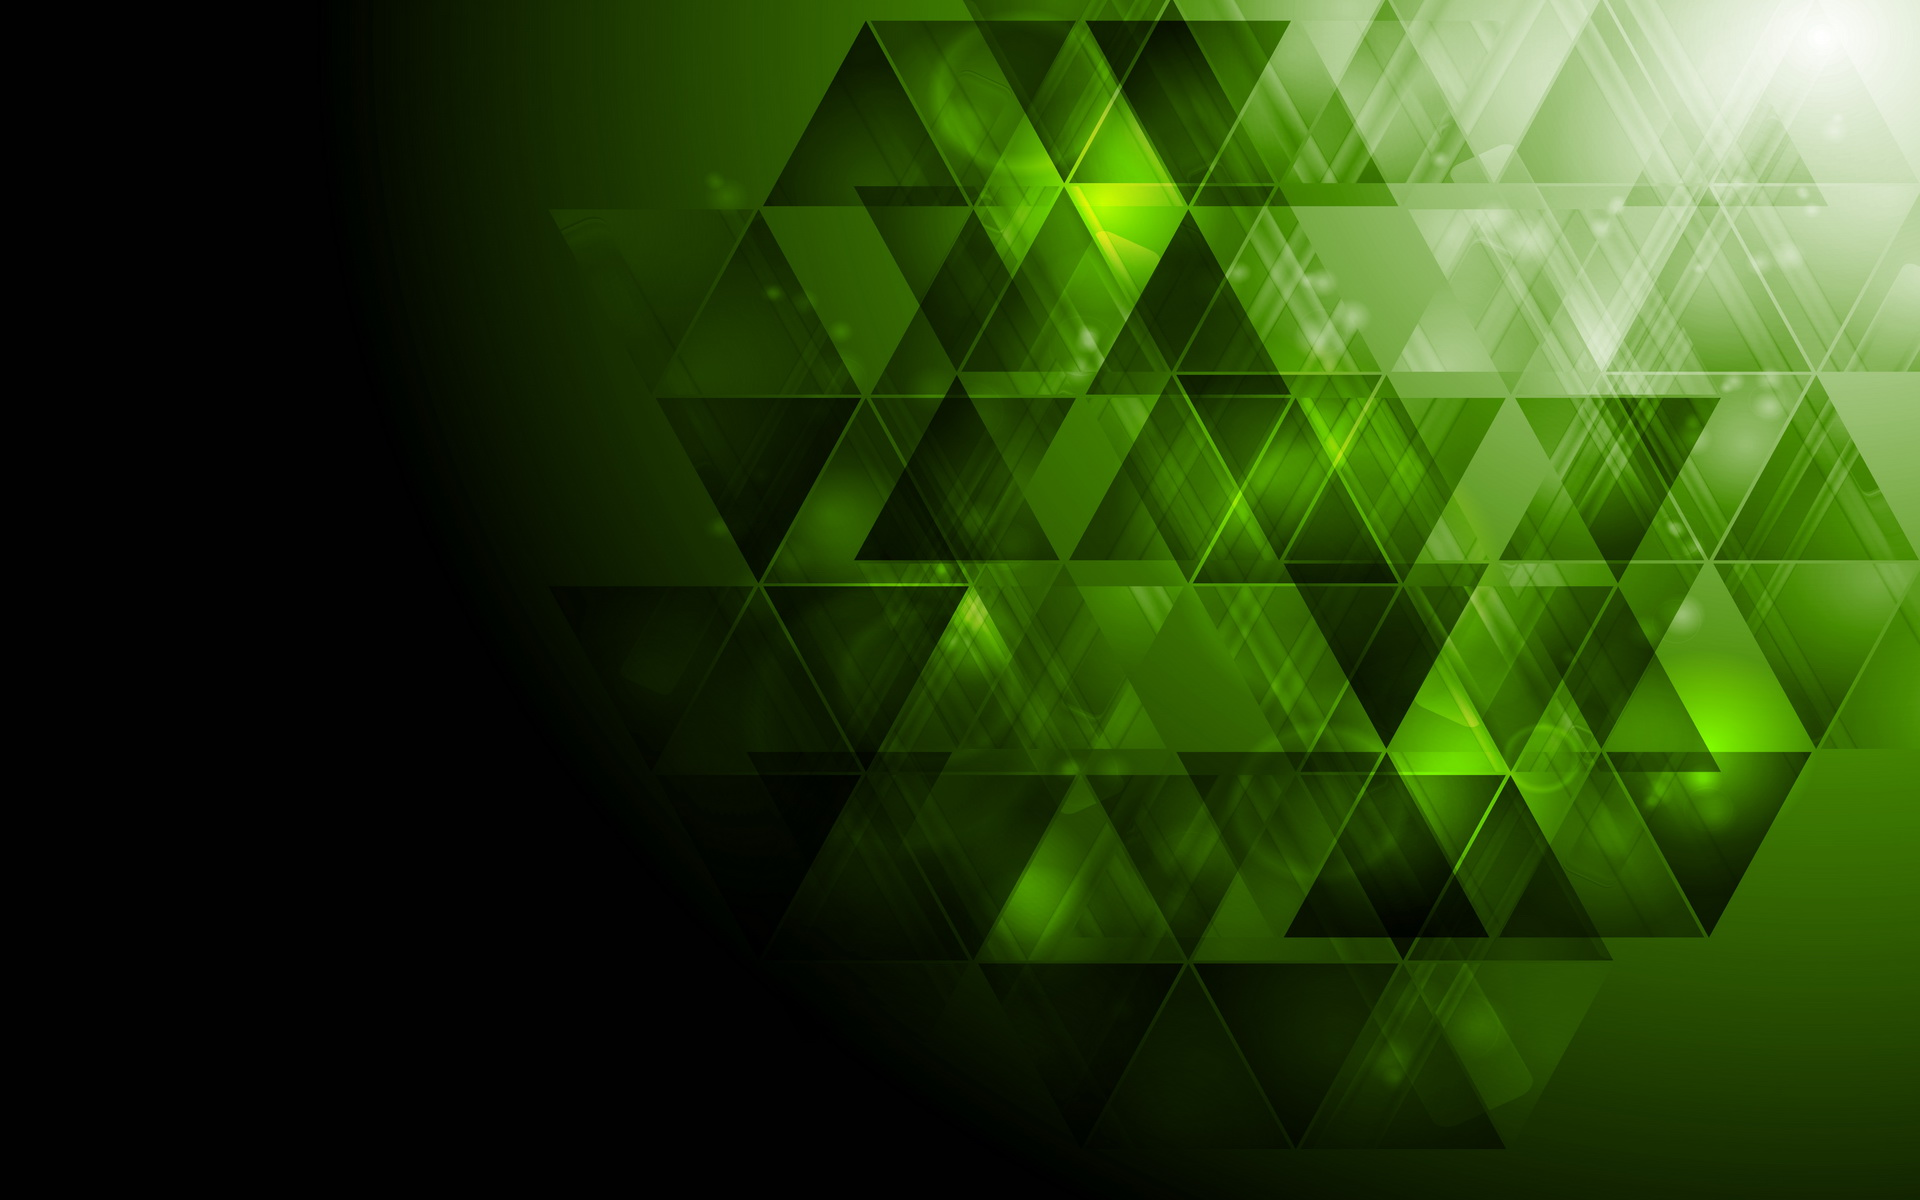 Green Wallpapers For Mobile